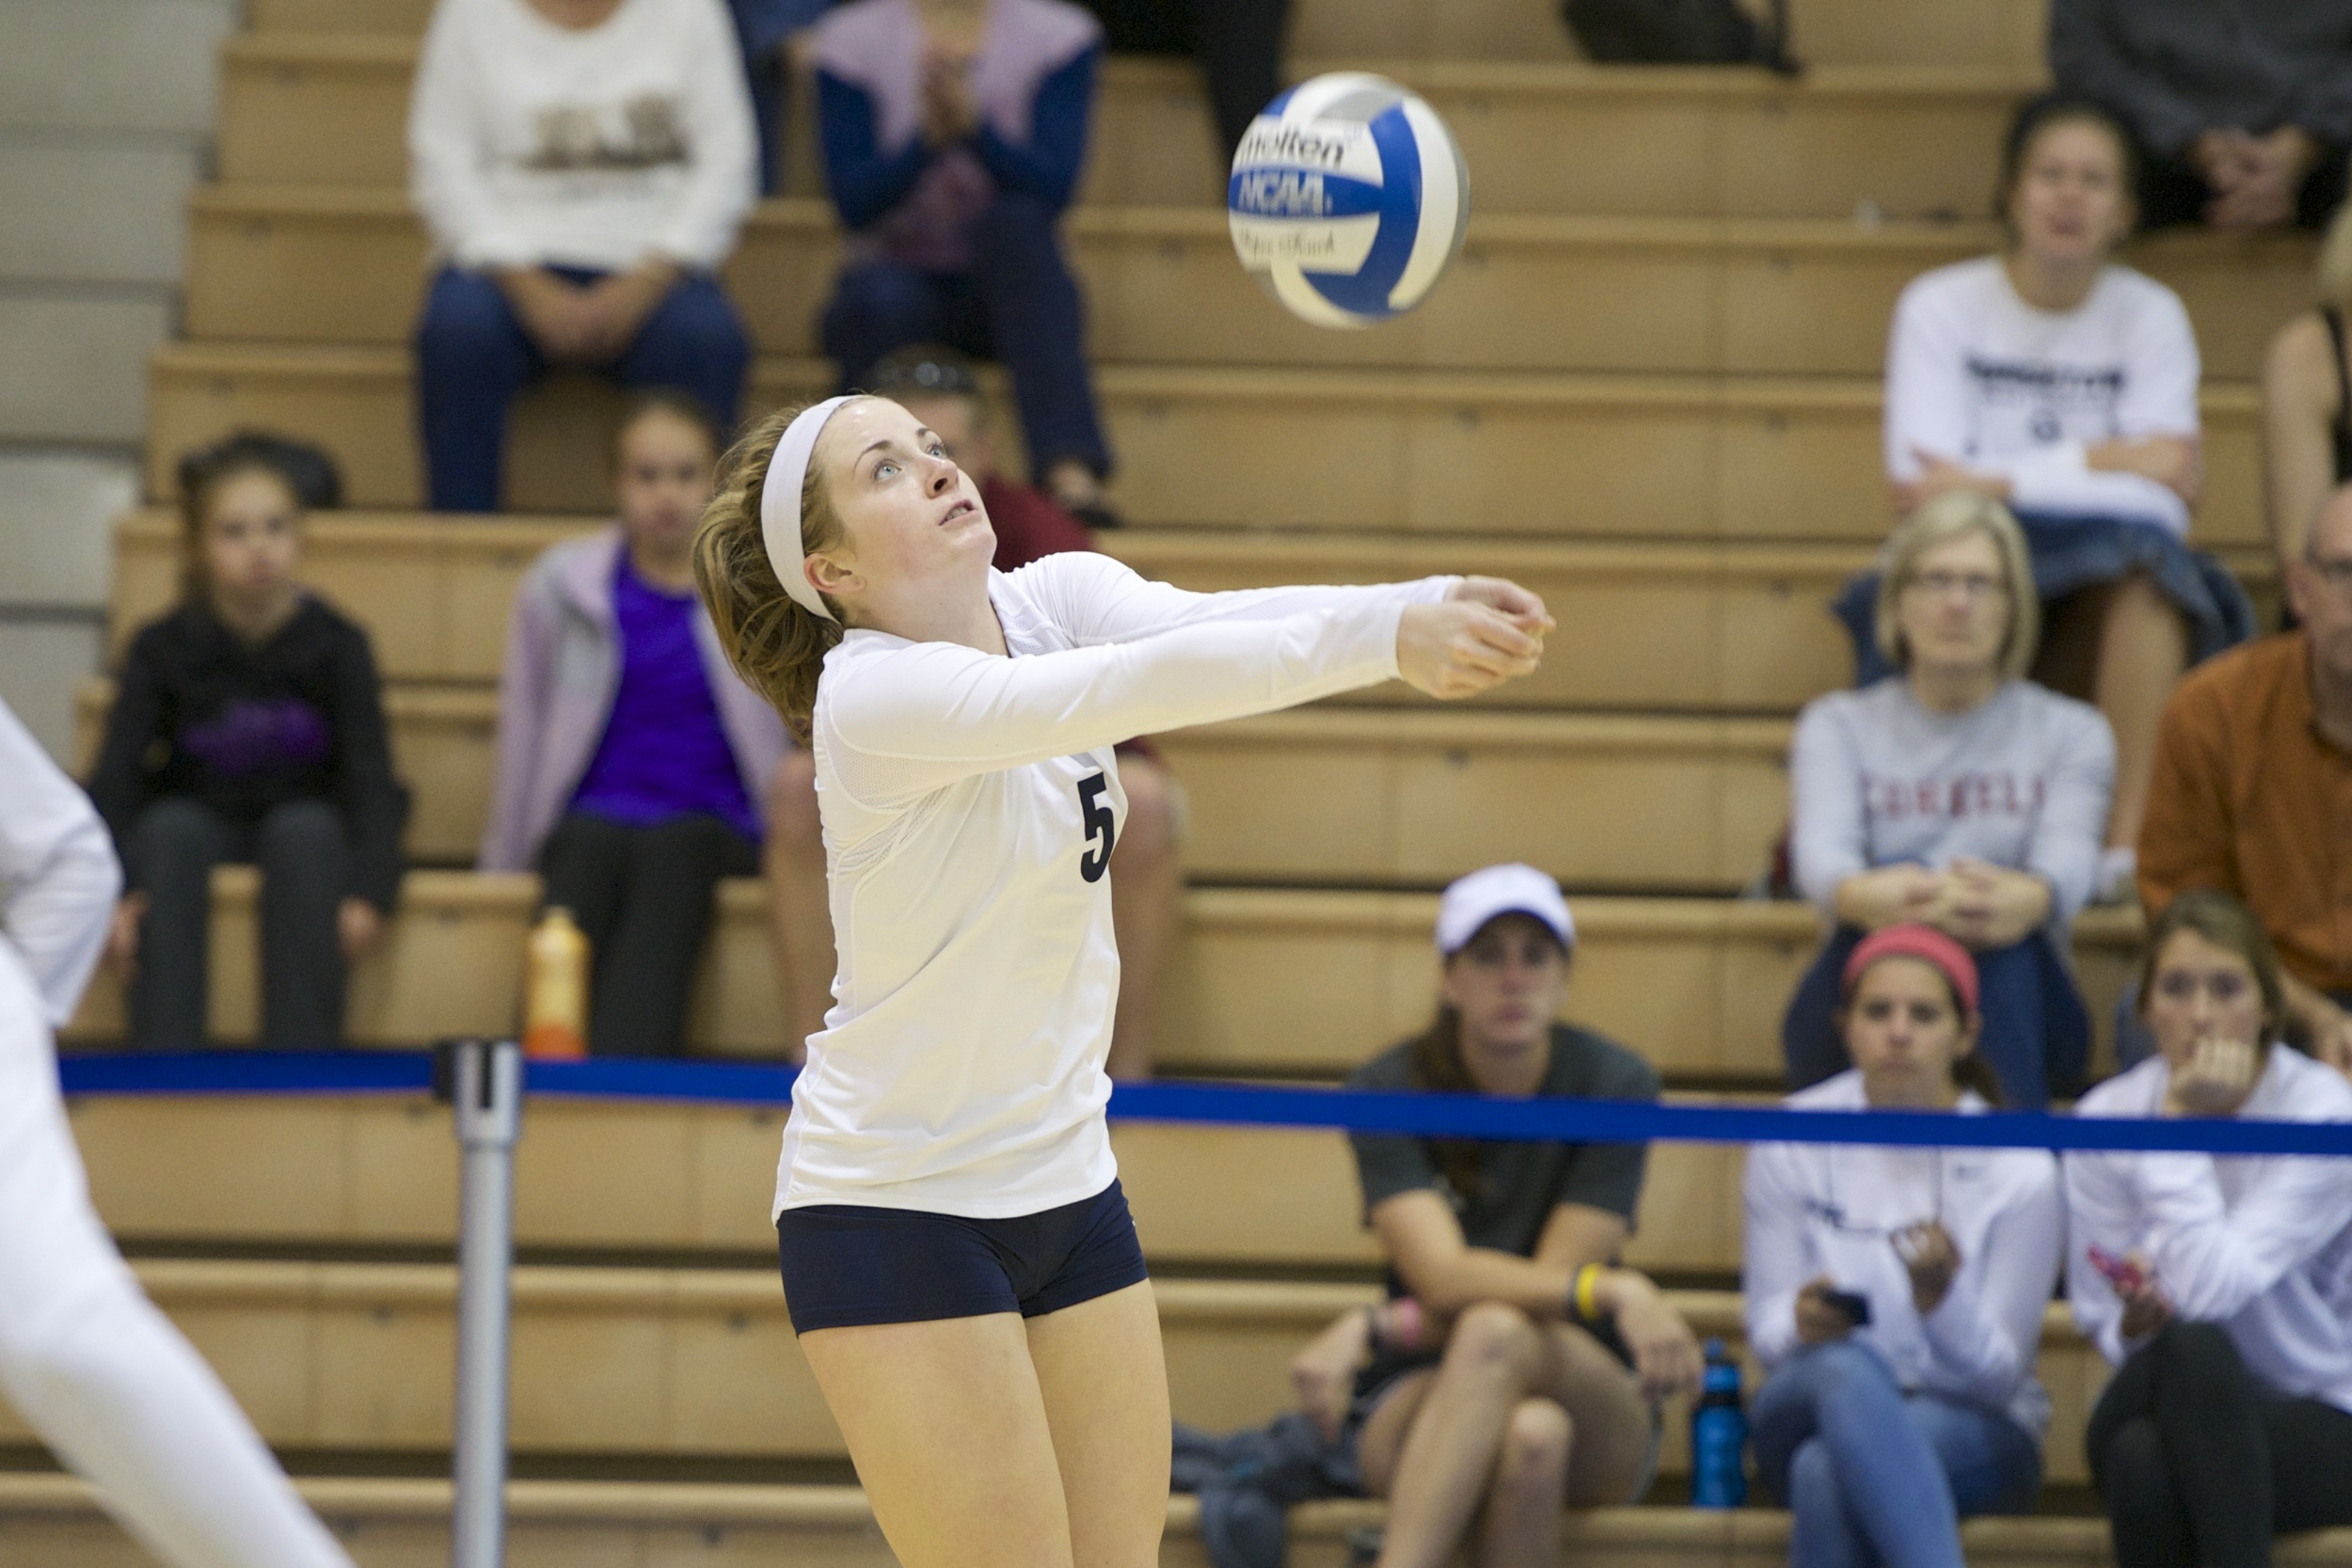 Casey Speer is averaging 10.31 assists per set since taking over the setting duties on Oct. 10.